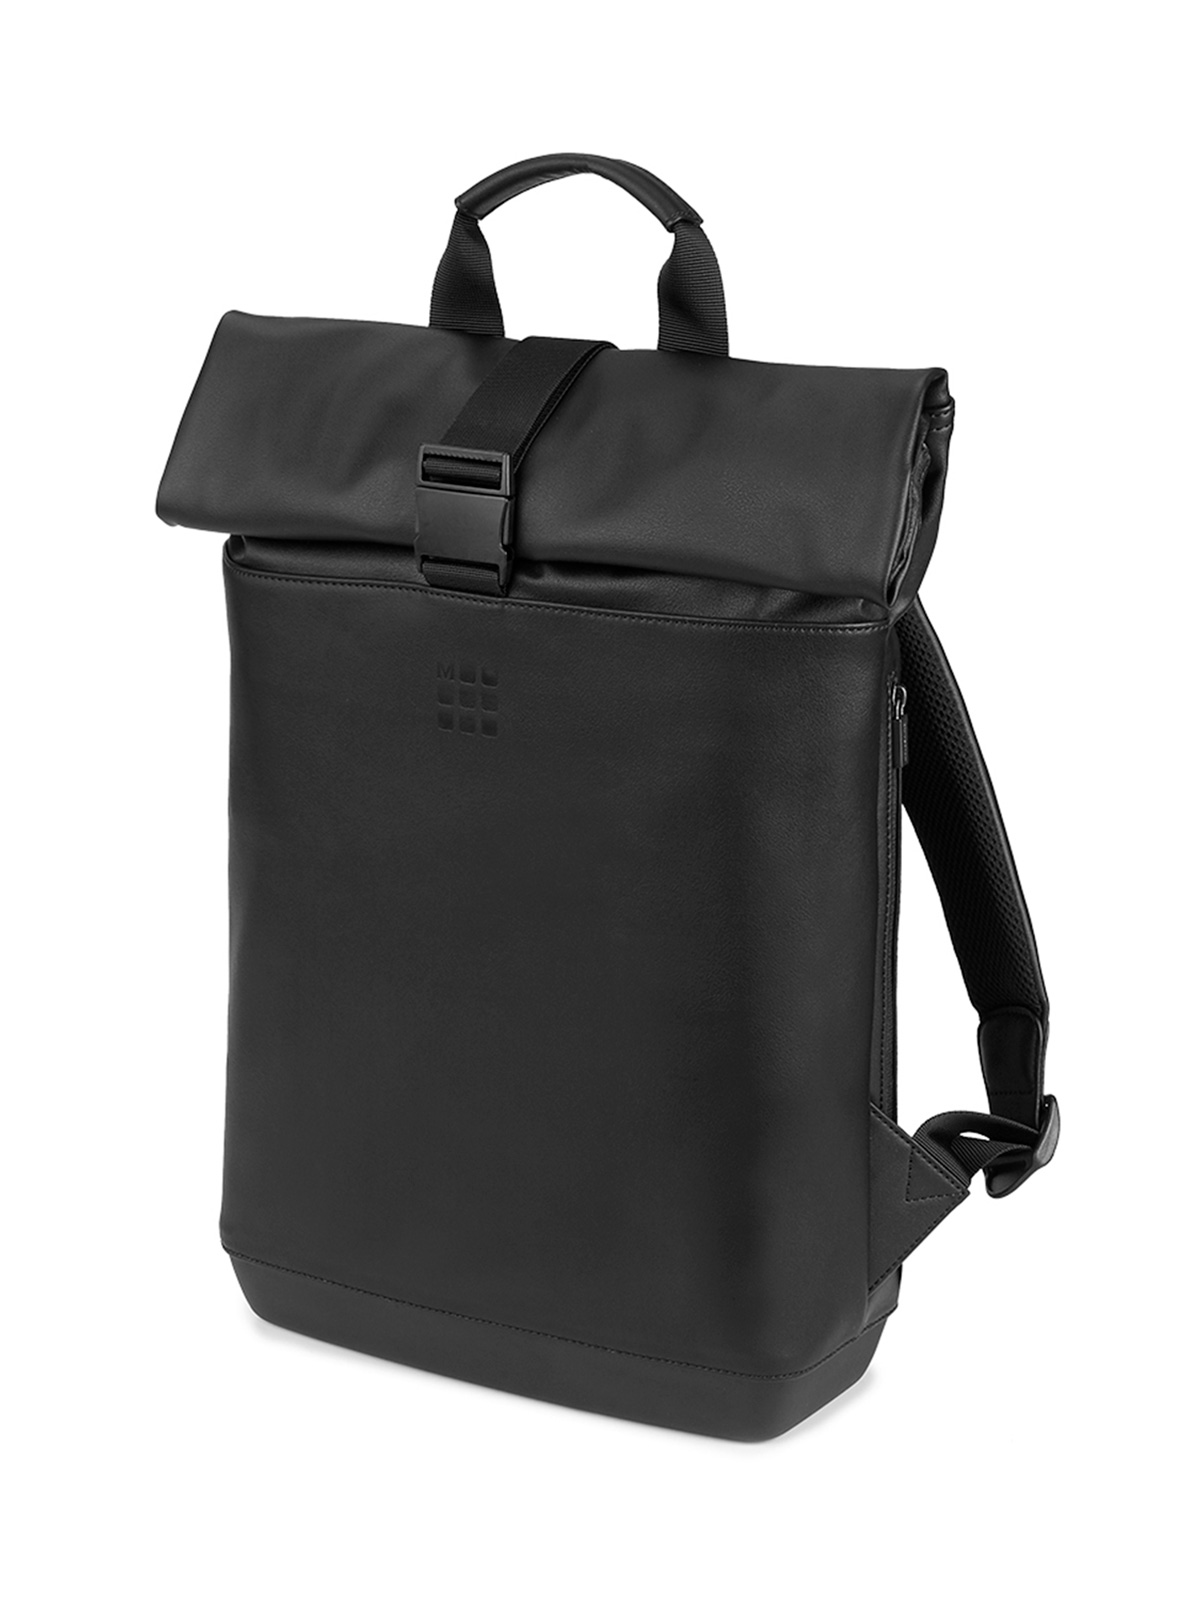 Immagine di Moleskine | Bag Classic Rolltop Backpack